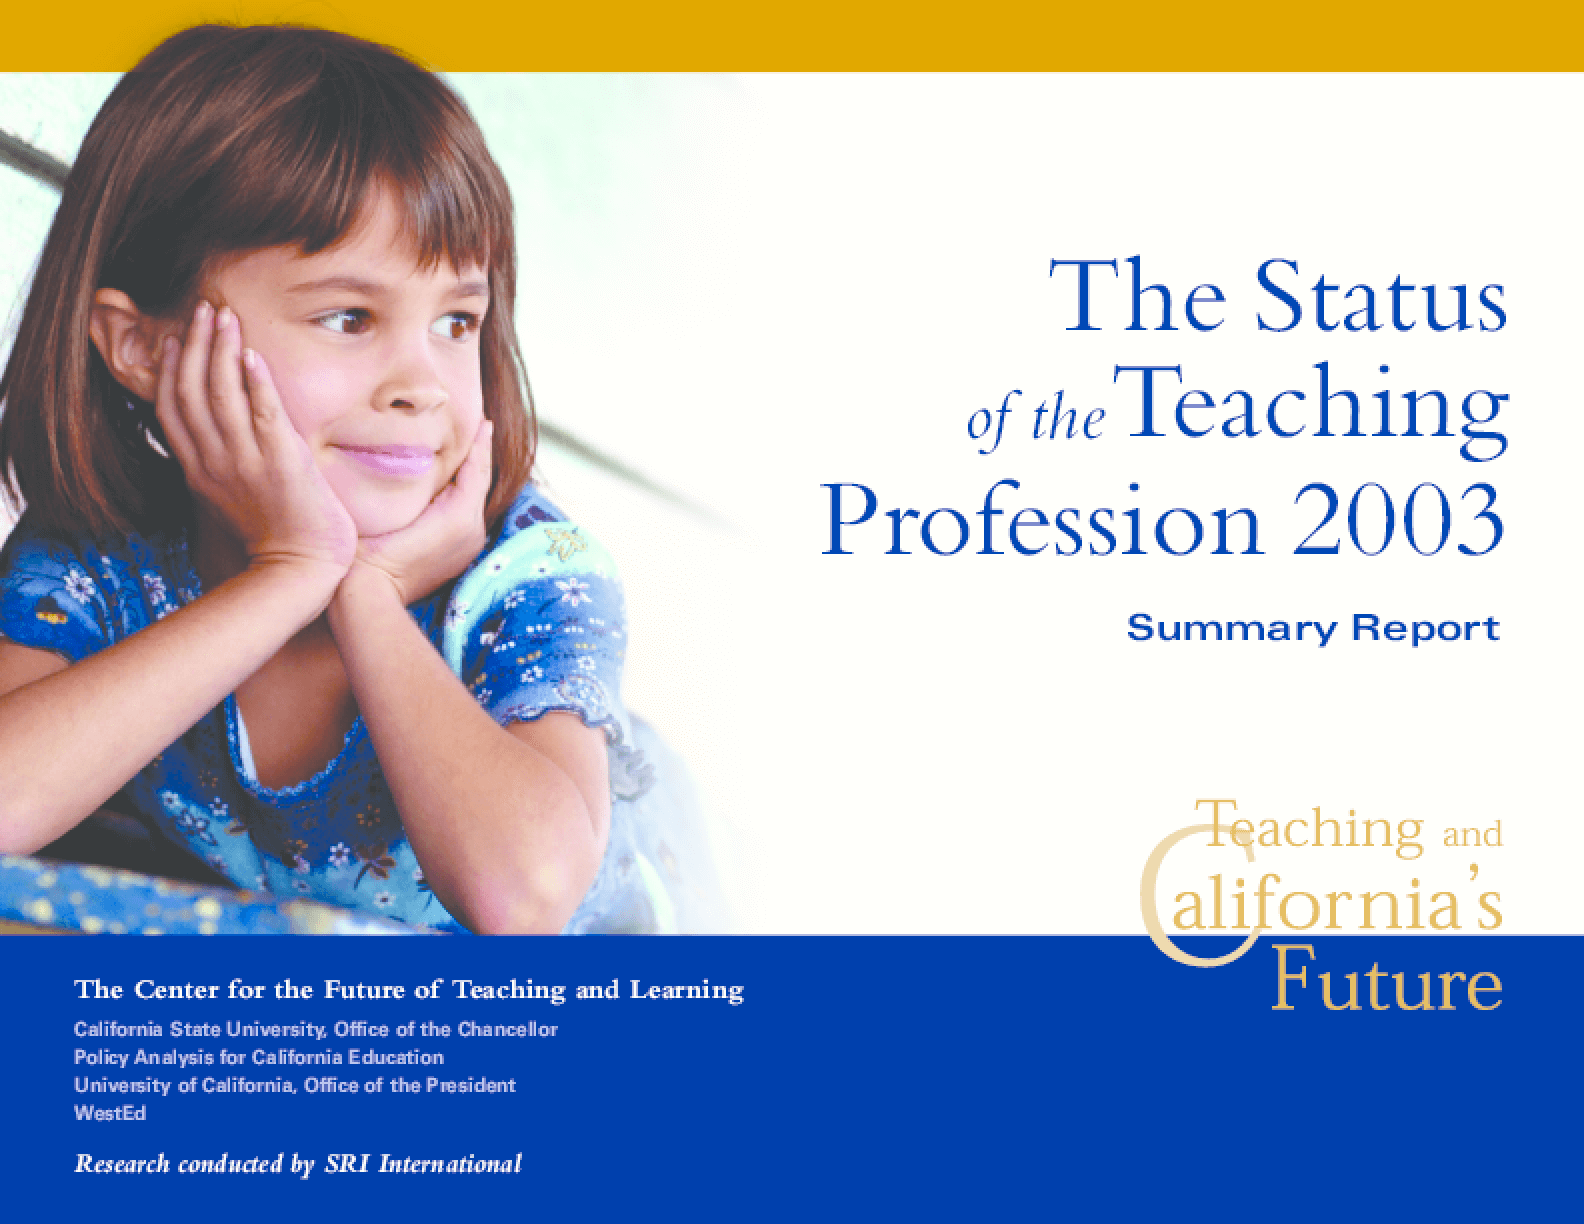 The Status of the Teaching Profession 2003: Summary Report